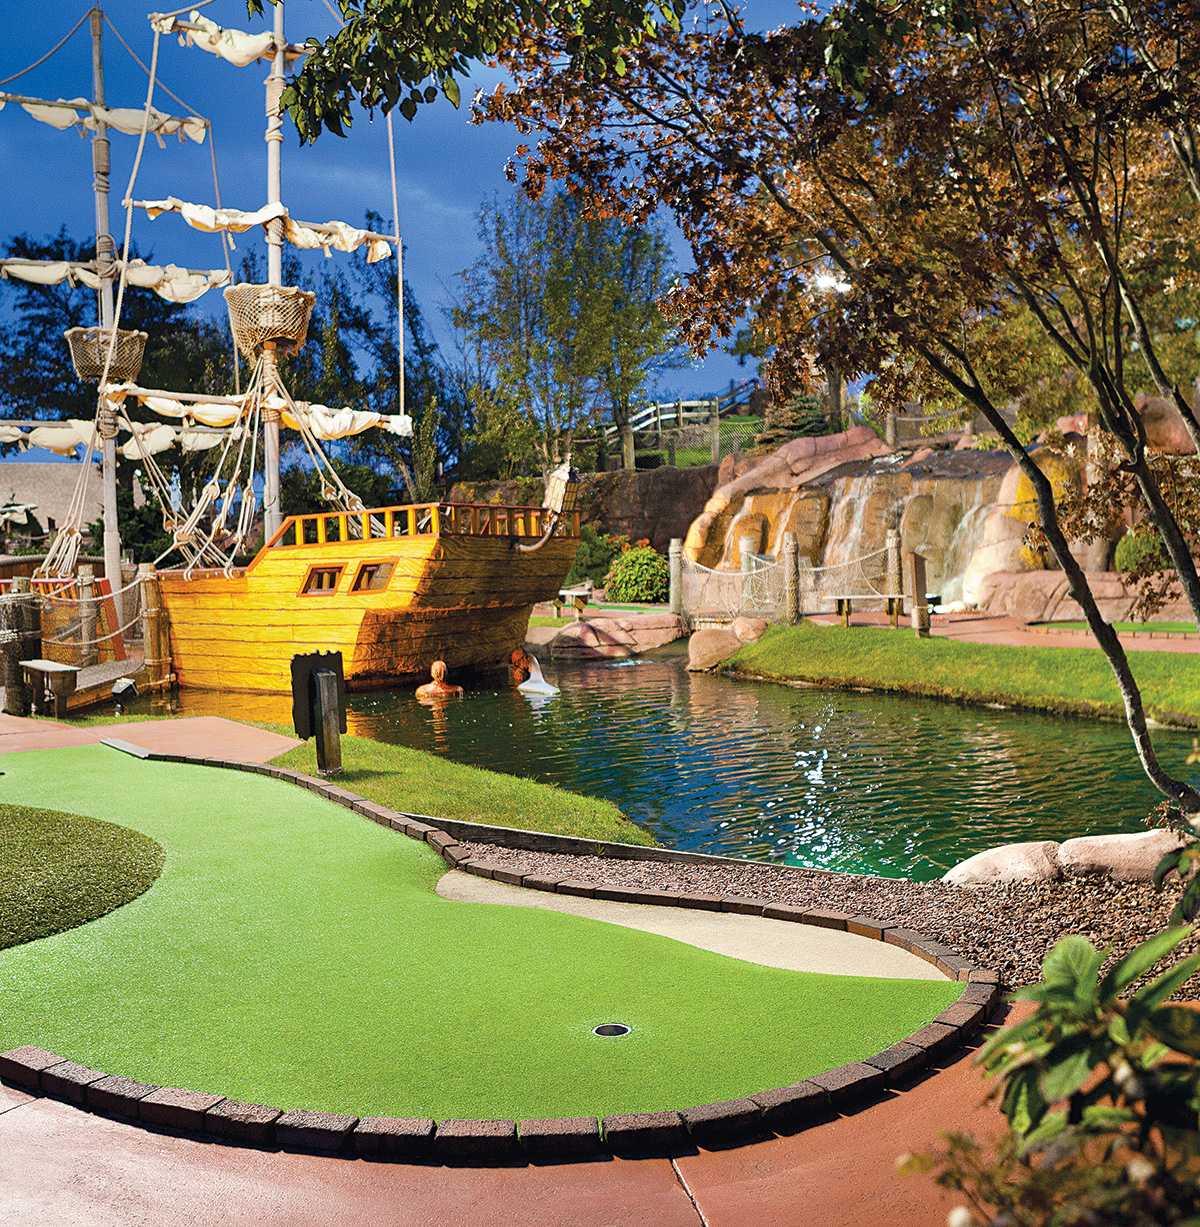 Mini golf at Pirate's Cove (Photo by Trent Bell).